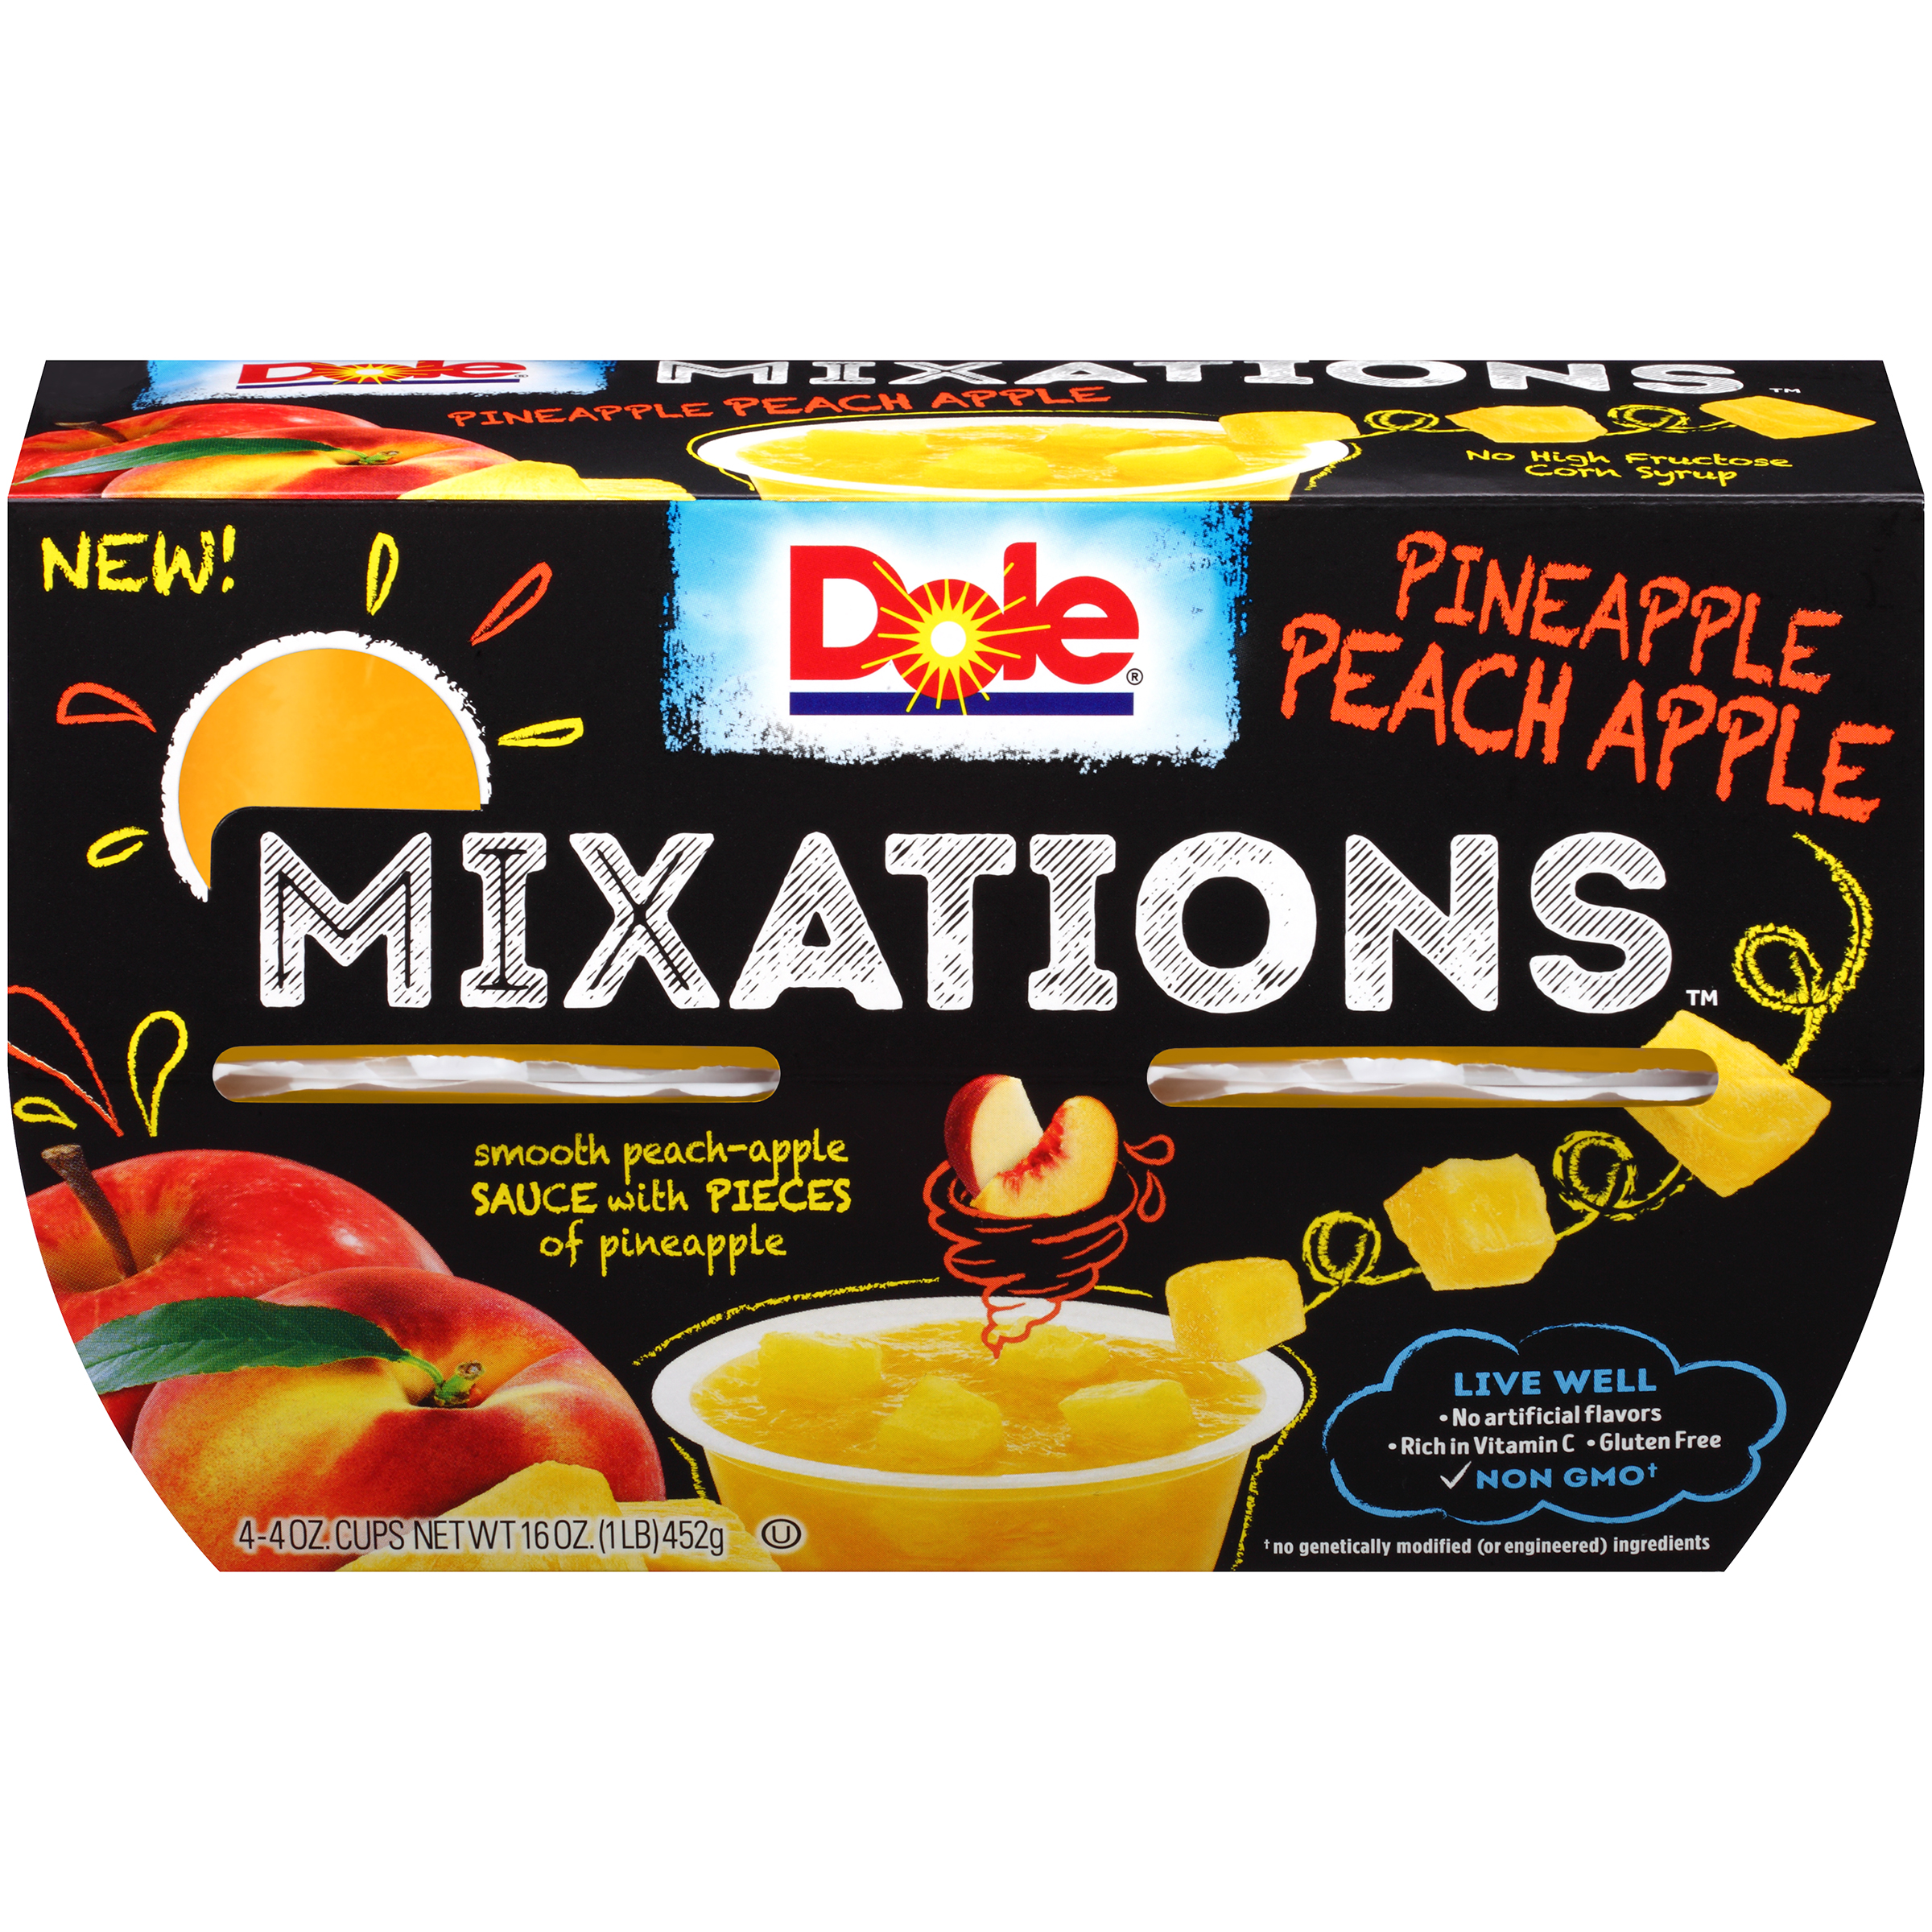 Dole Fruit Bowls, Mixations Pineapple Peach Apple, 4 Ounce (4 Cups)